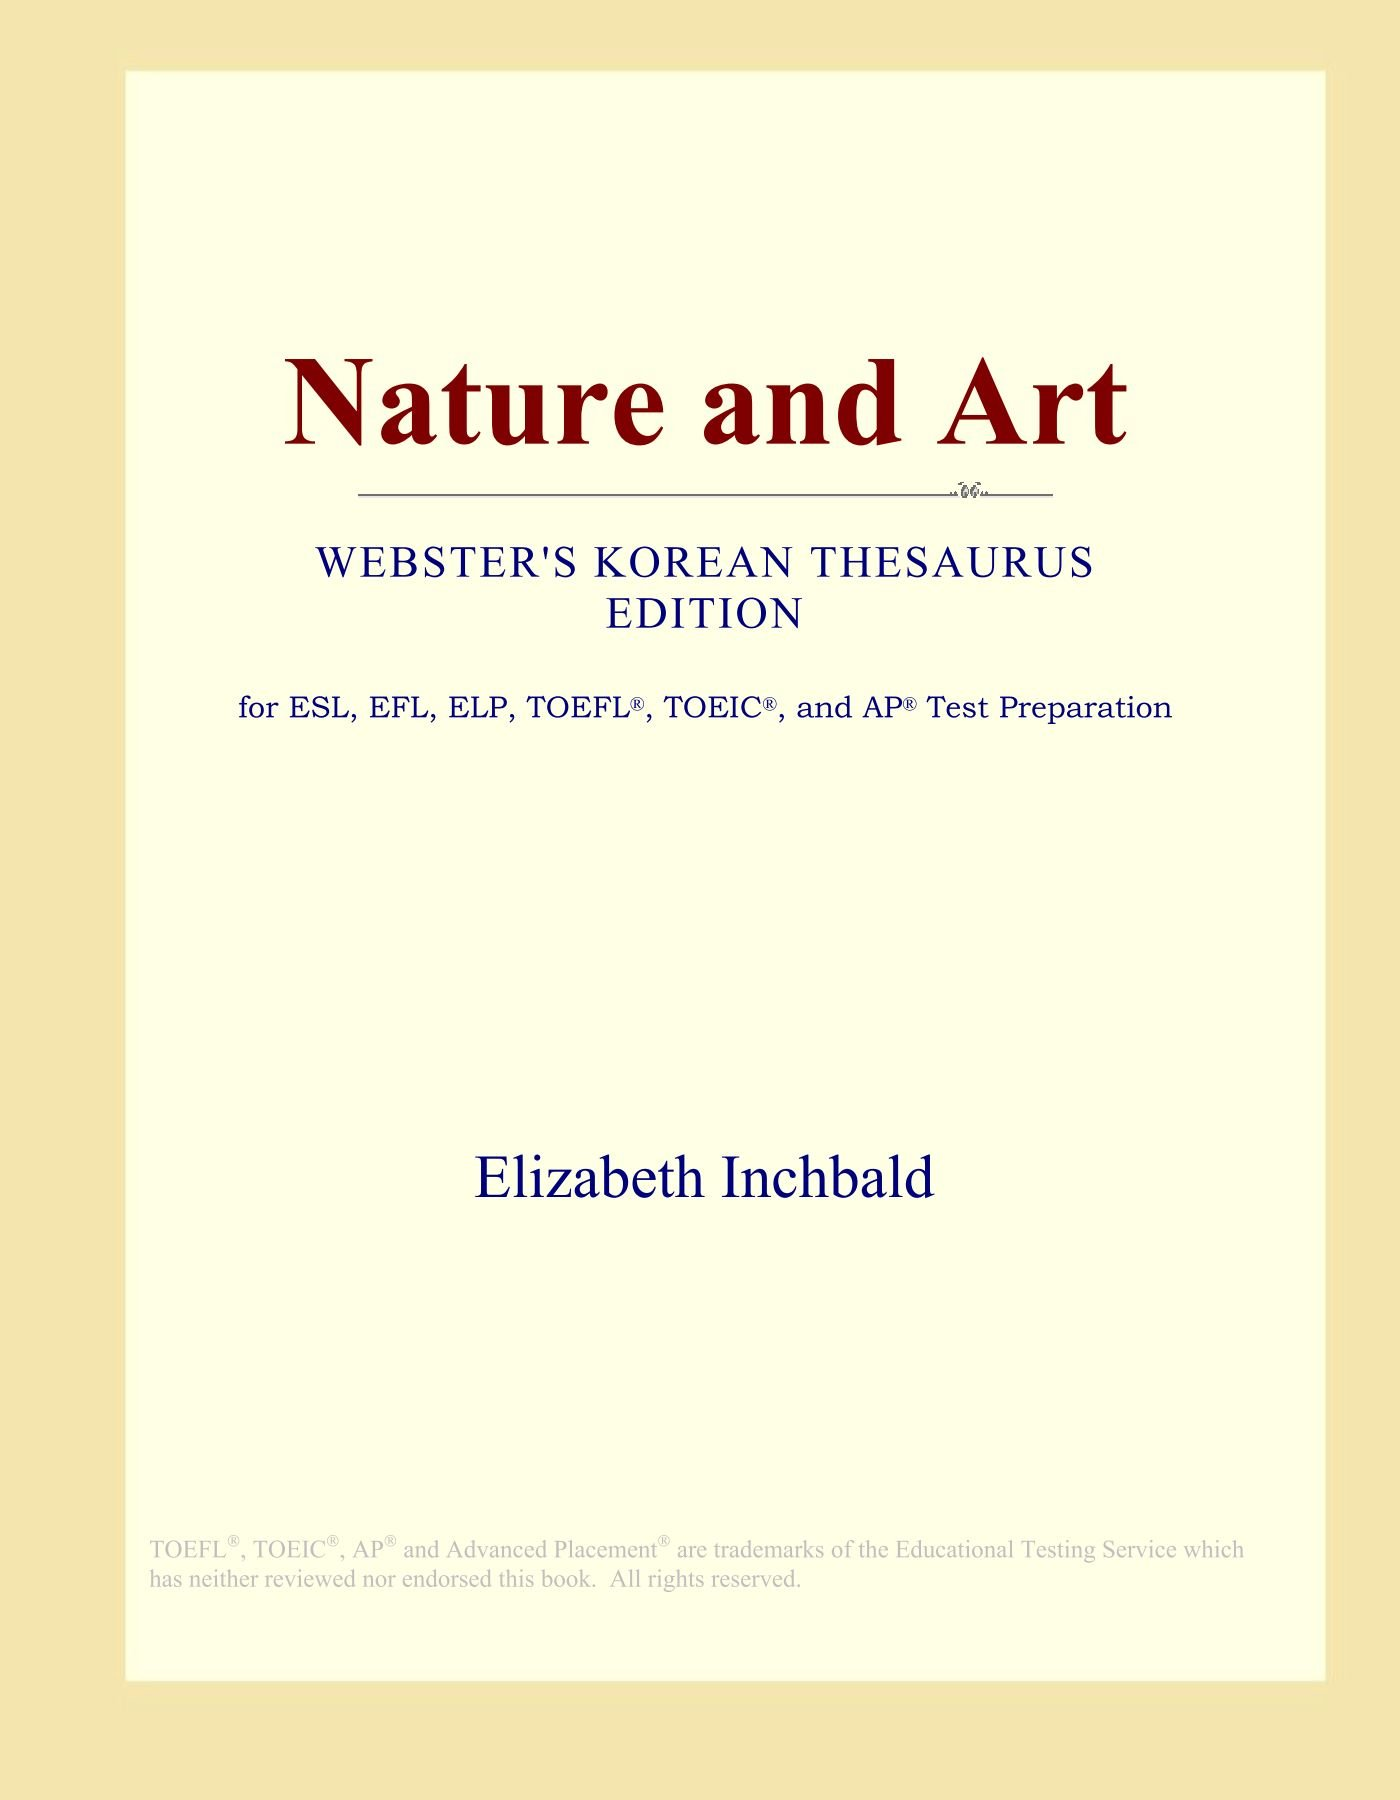 Nature and Art (Webster's Korean Thesaurus Edition) pdf